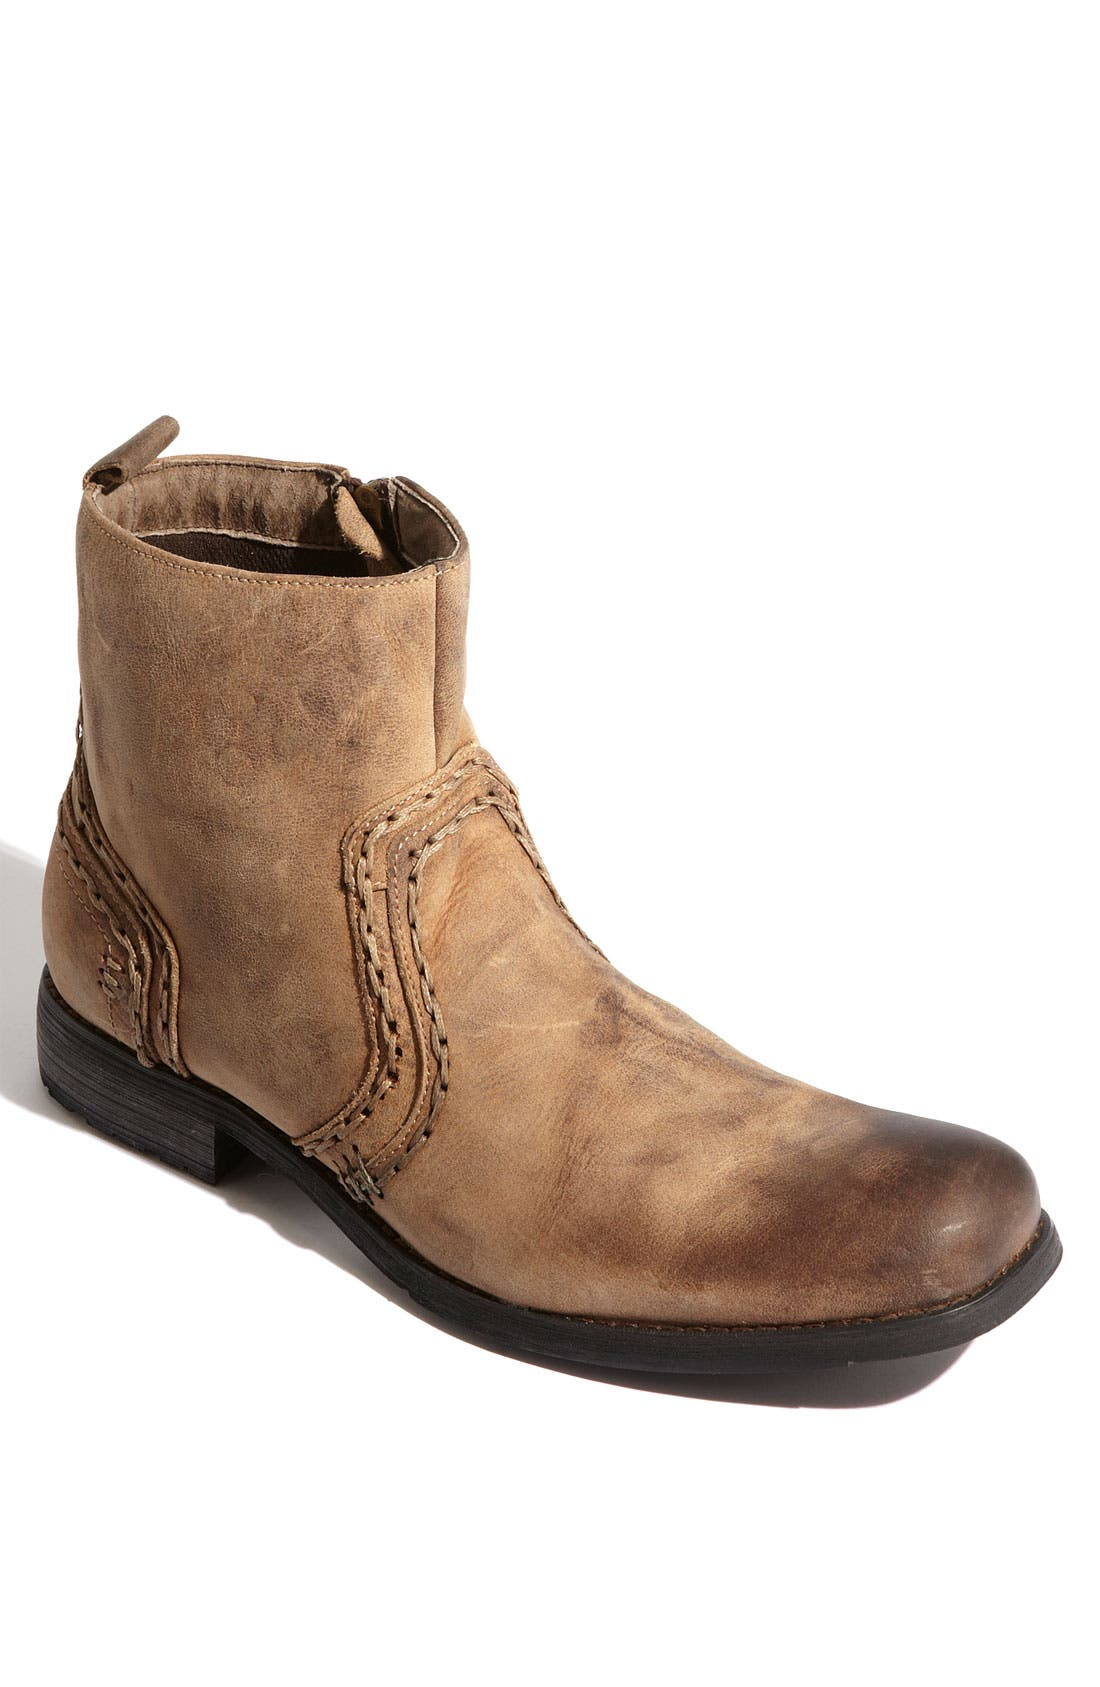 Main Image - Bed Stu 'Revolution' Boot (Men)